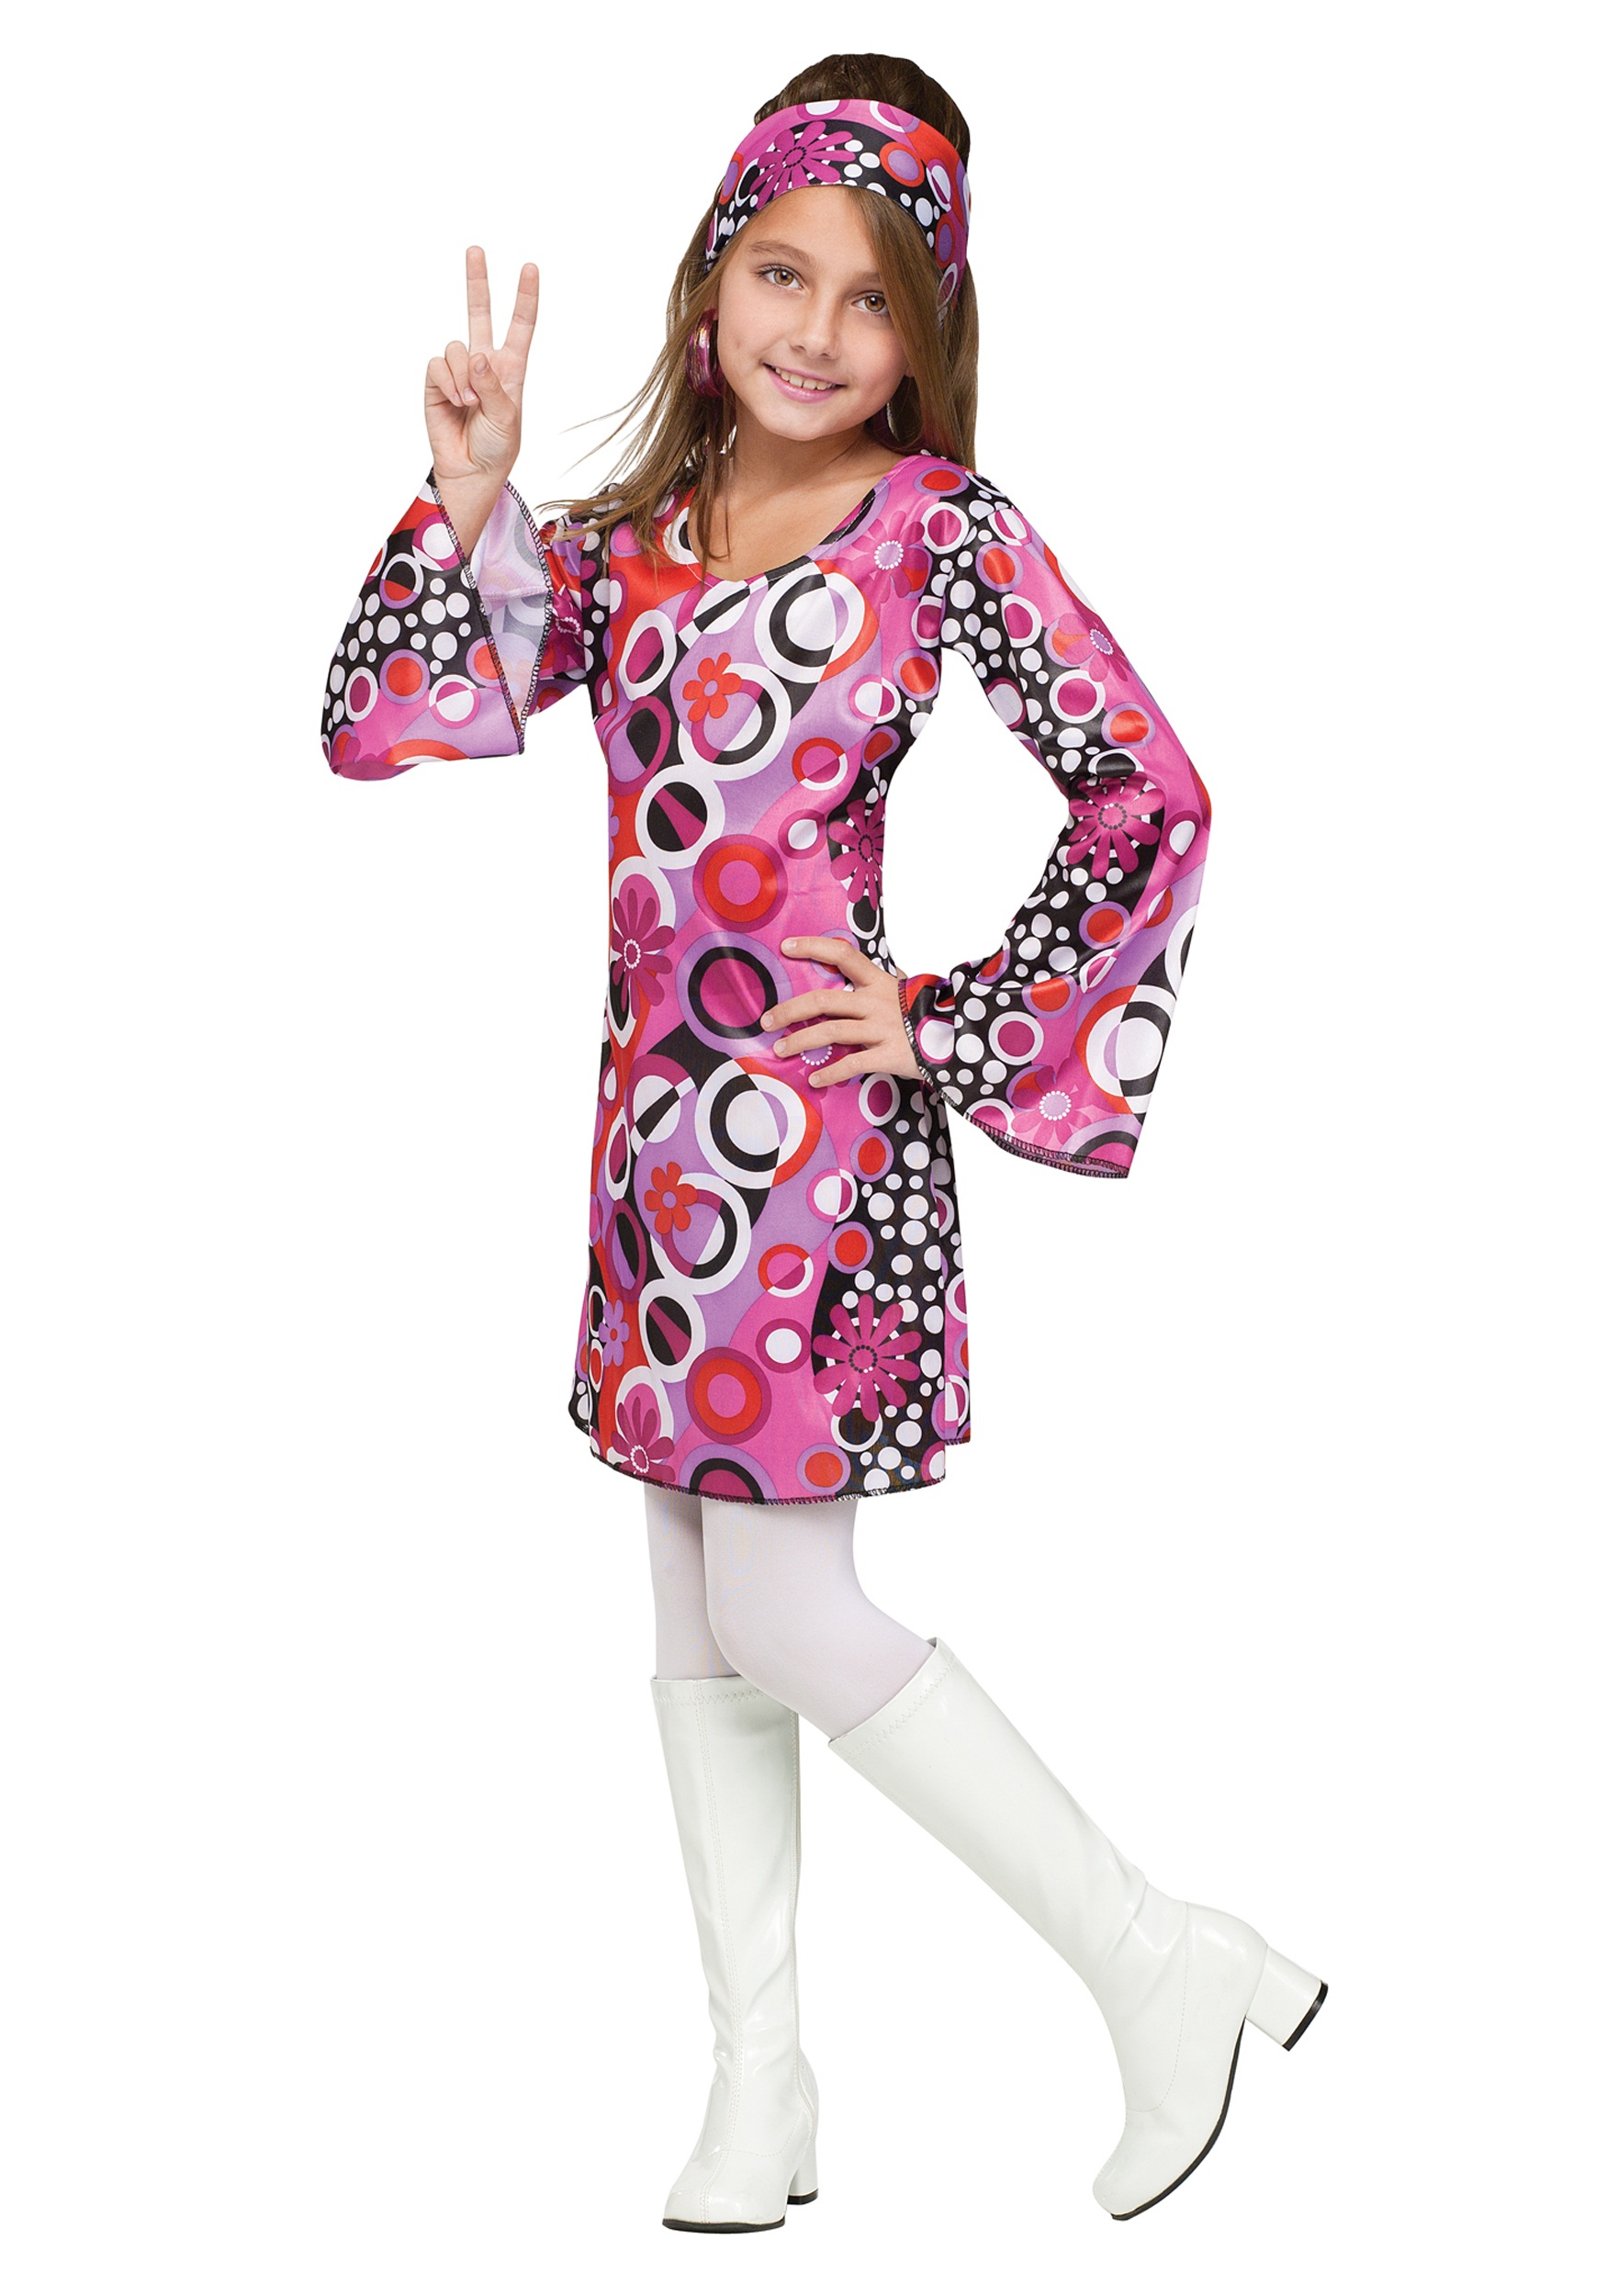 Go Go Groovy Girl Costume  sc 1 st  Halloween Costume & Go Go Groovy Girl Costume- Girls Retro Costume Ideas